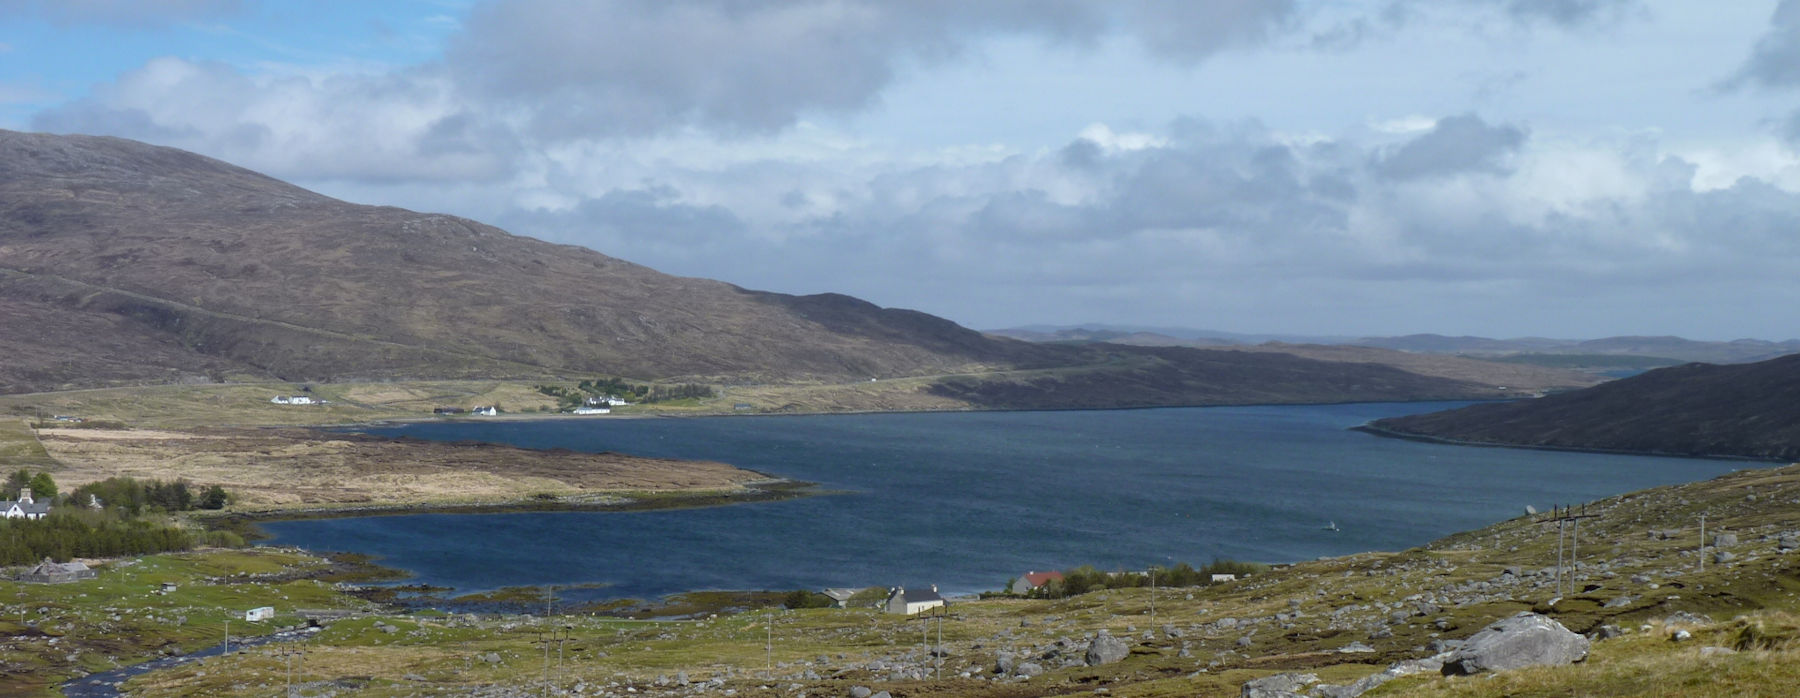 Scaladale, Loch Seaforth, Isle of Harris